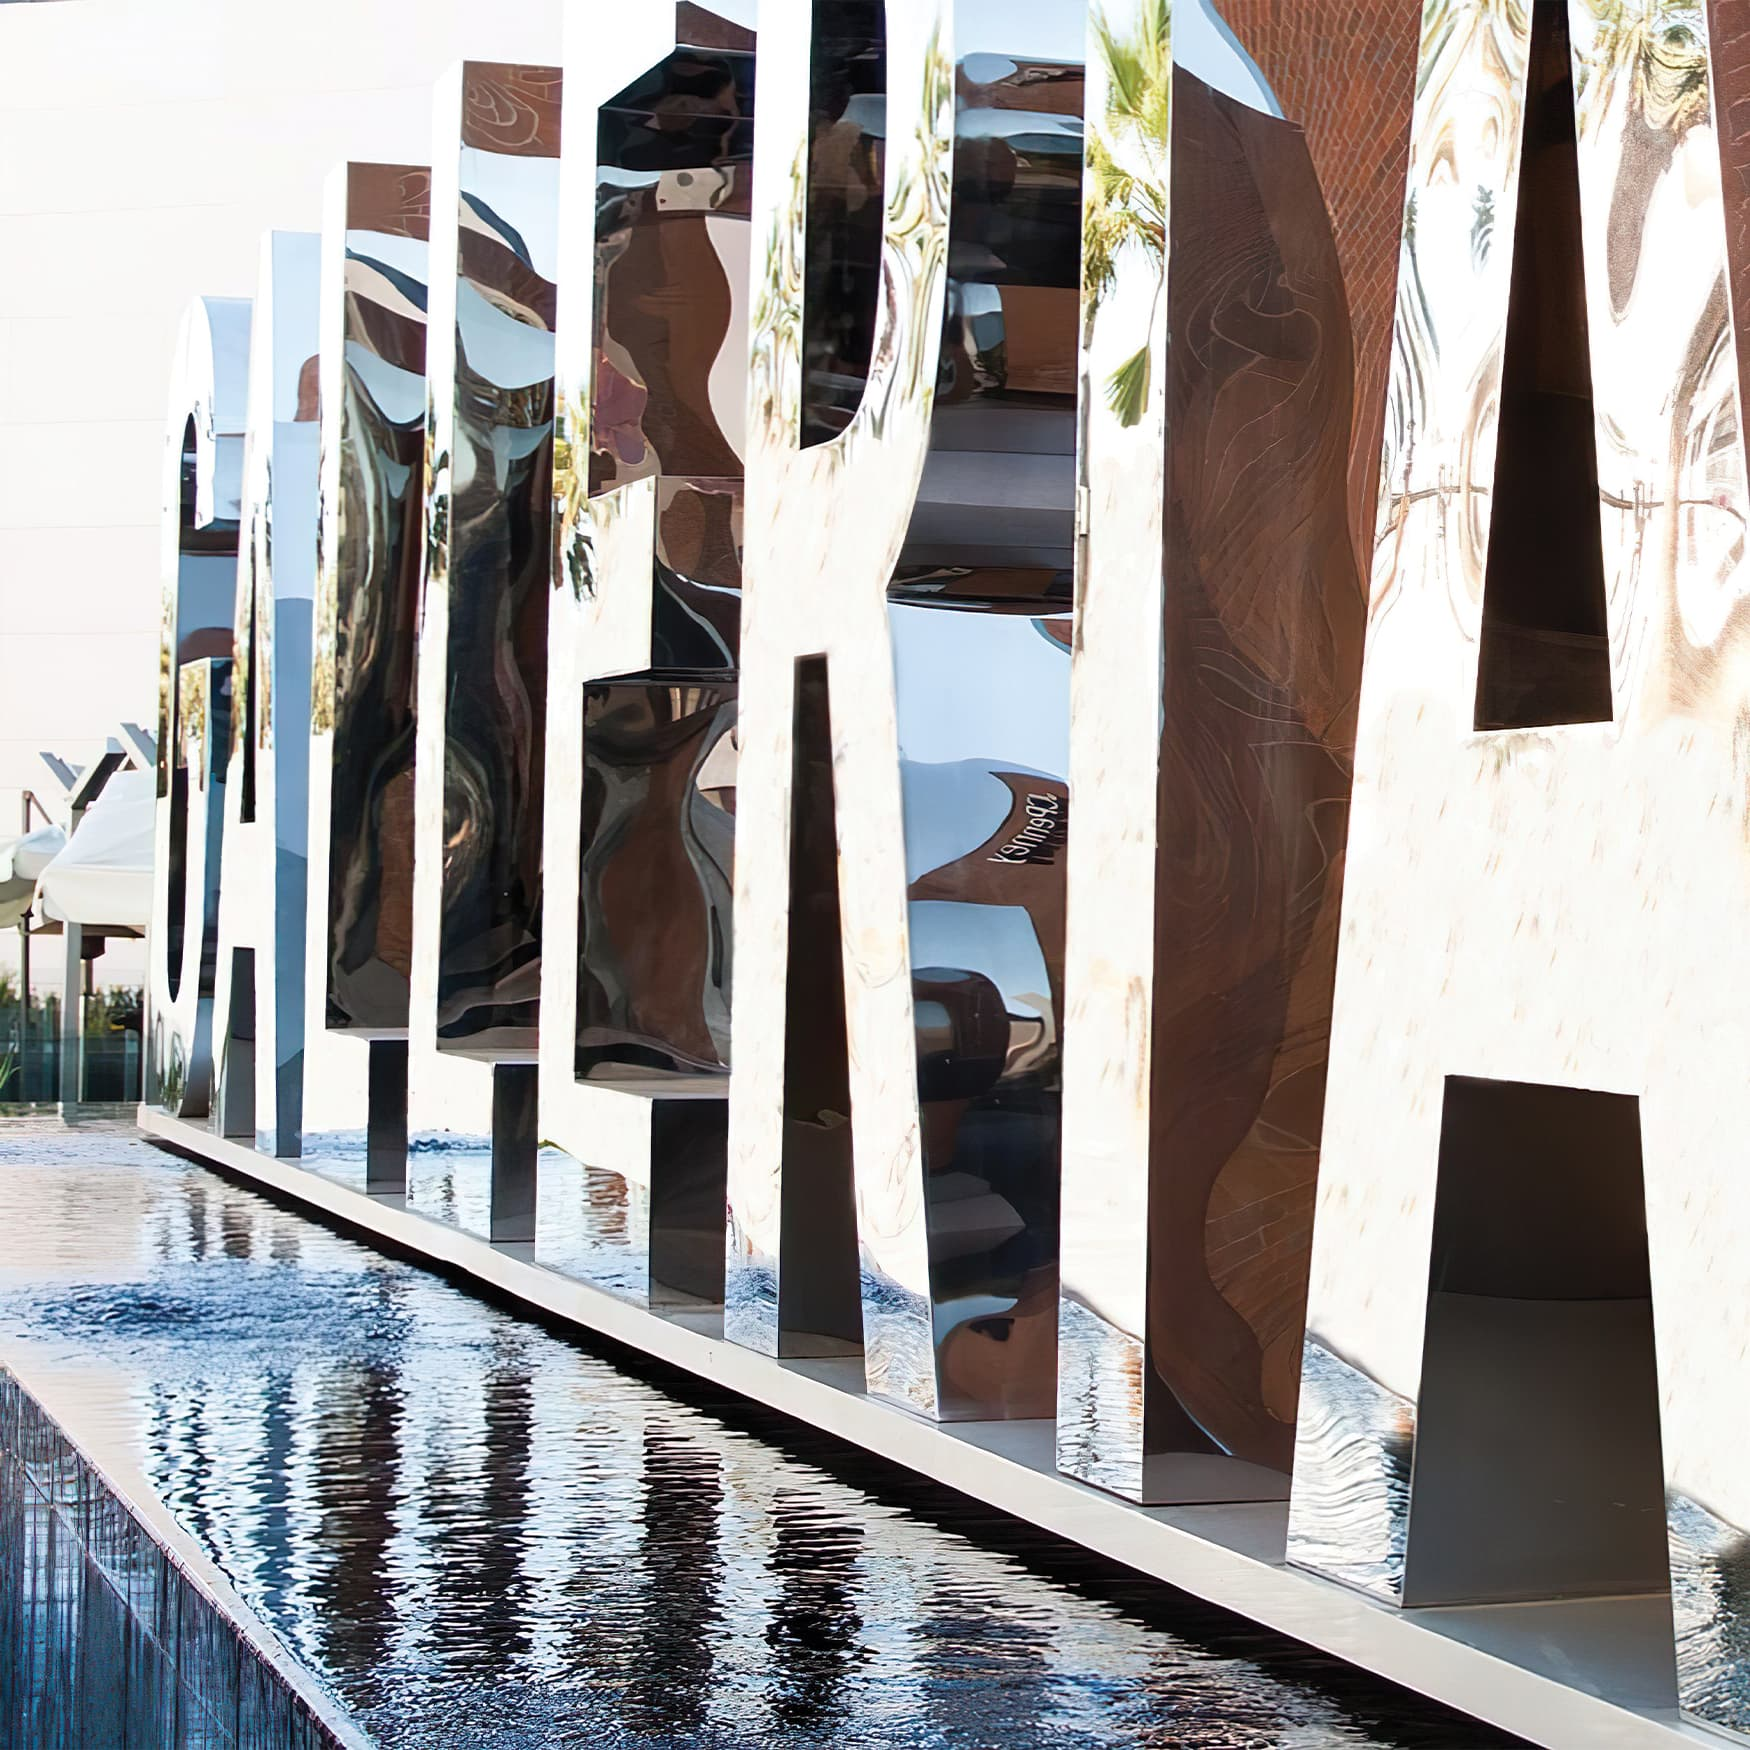 Glendale Galleria reflective project identity monument.